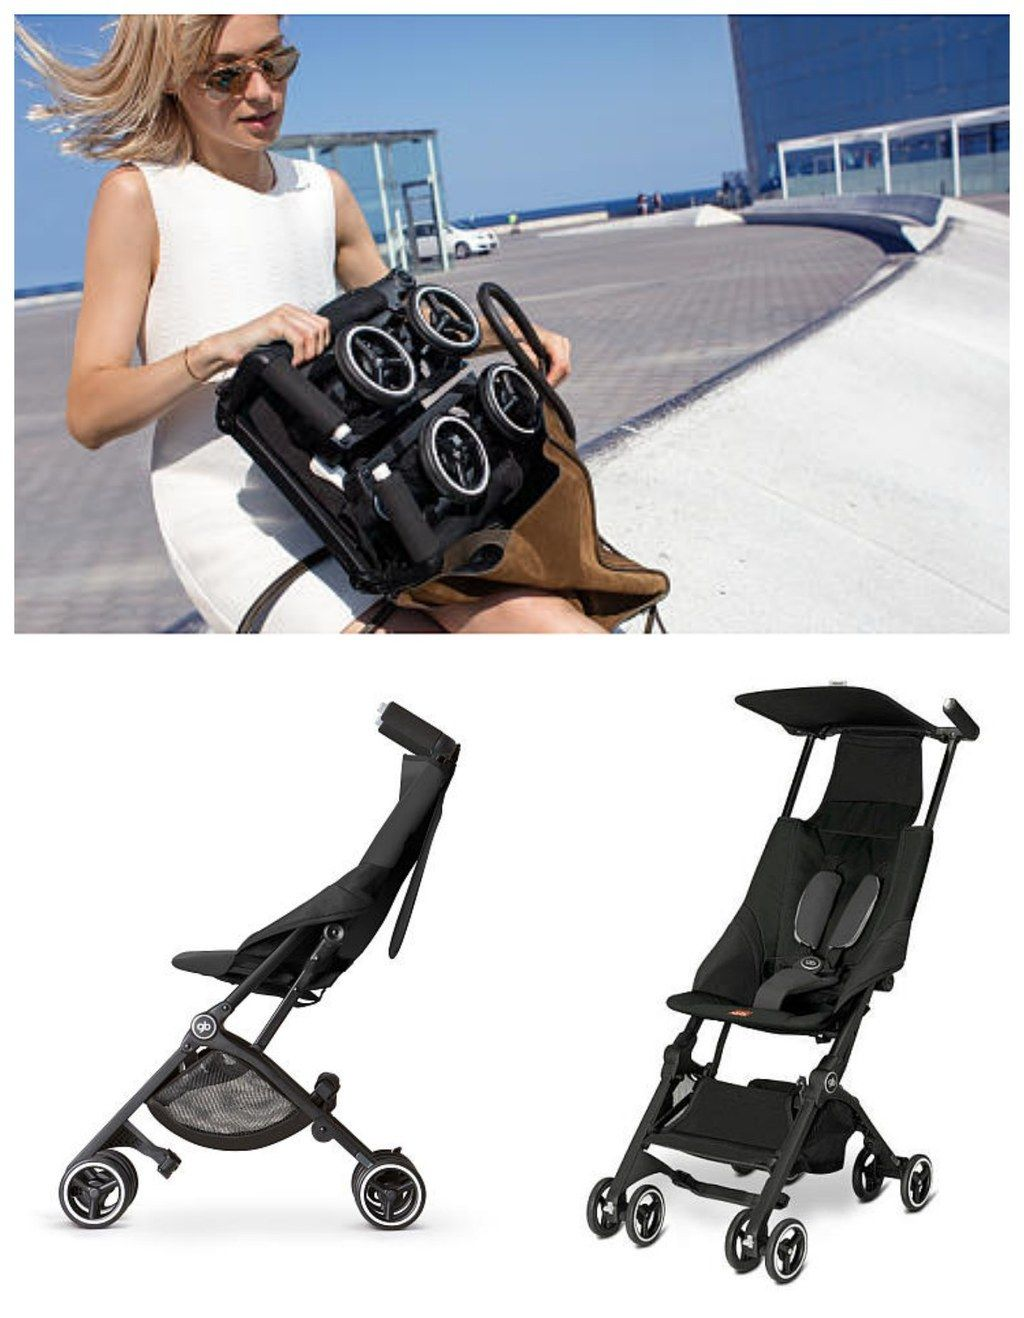 This stroller that folds up small enough to